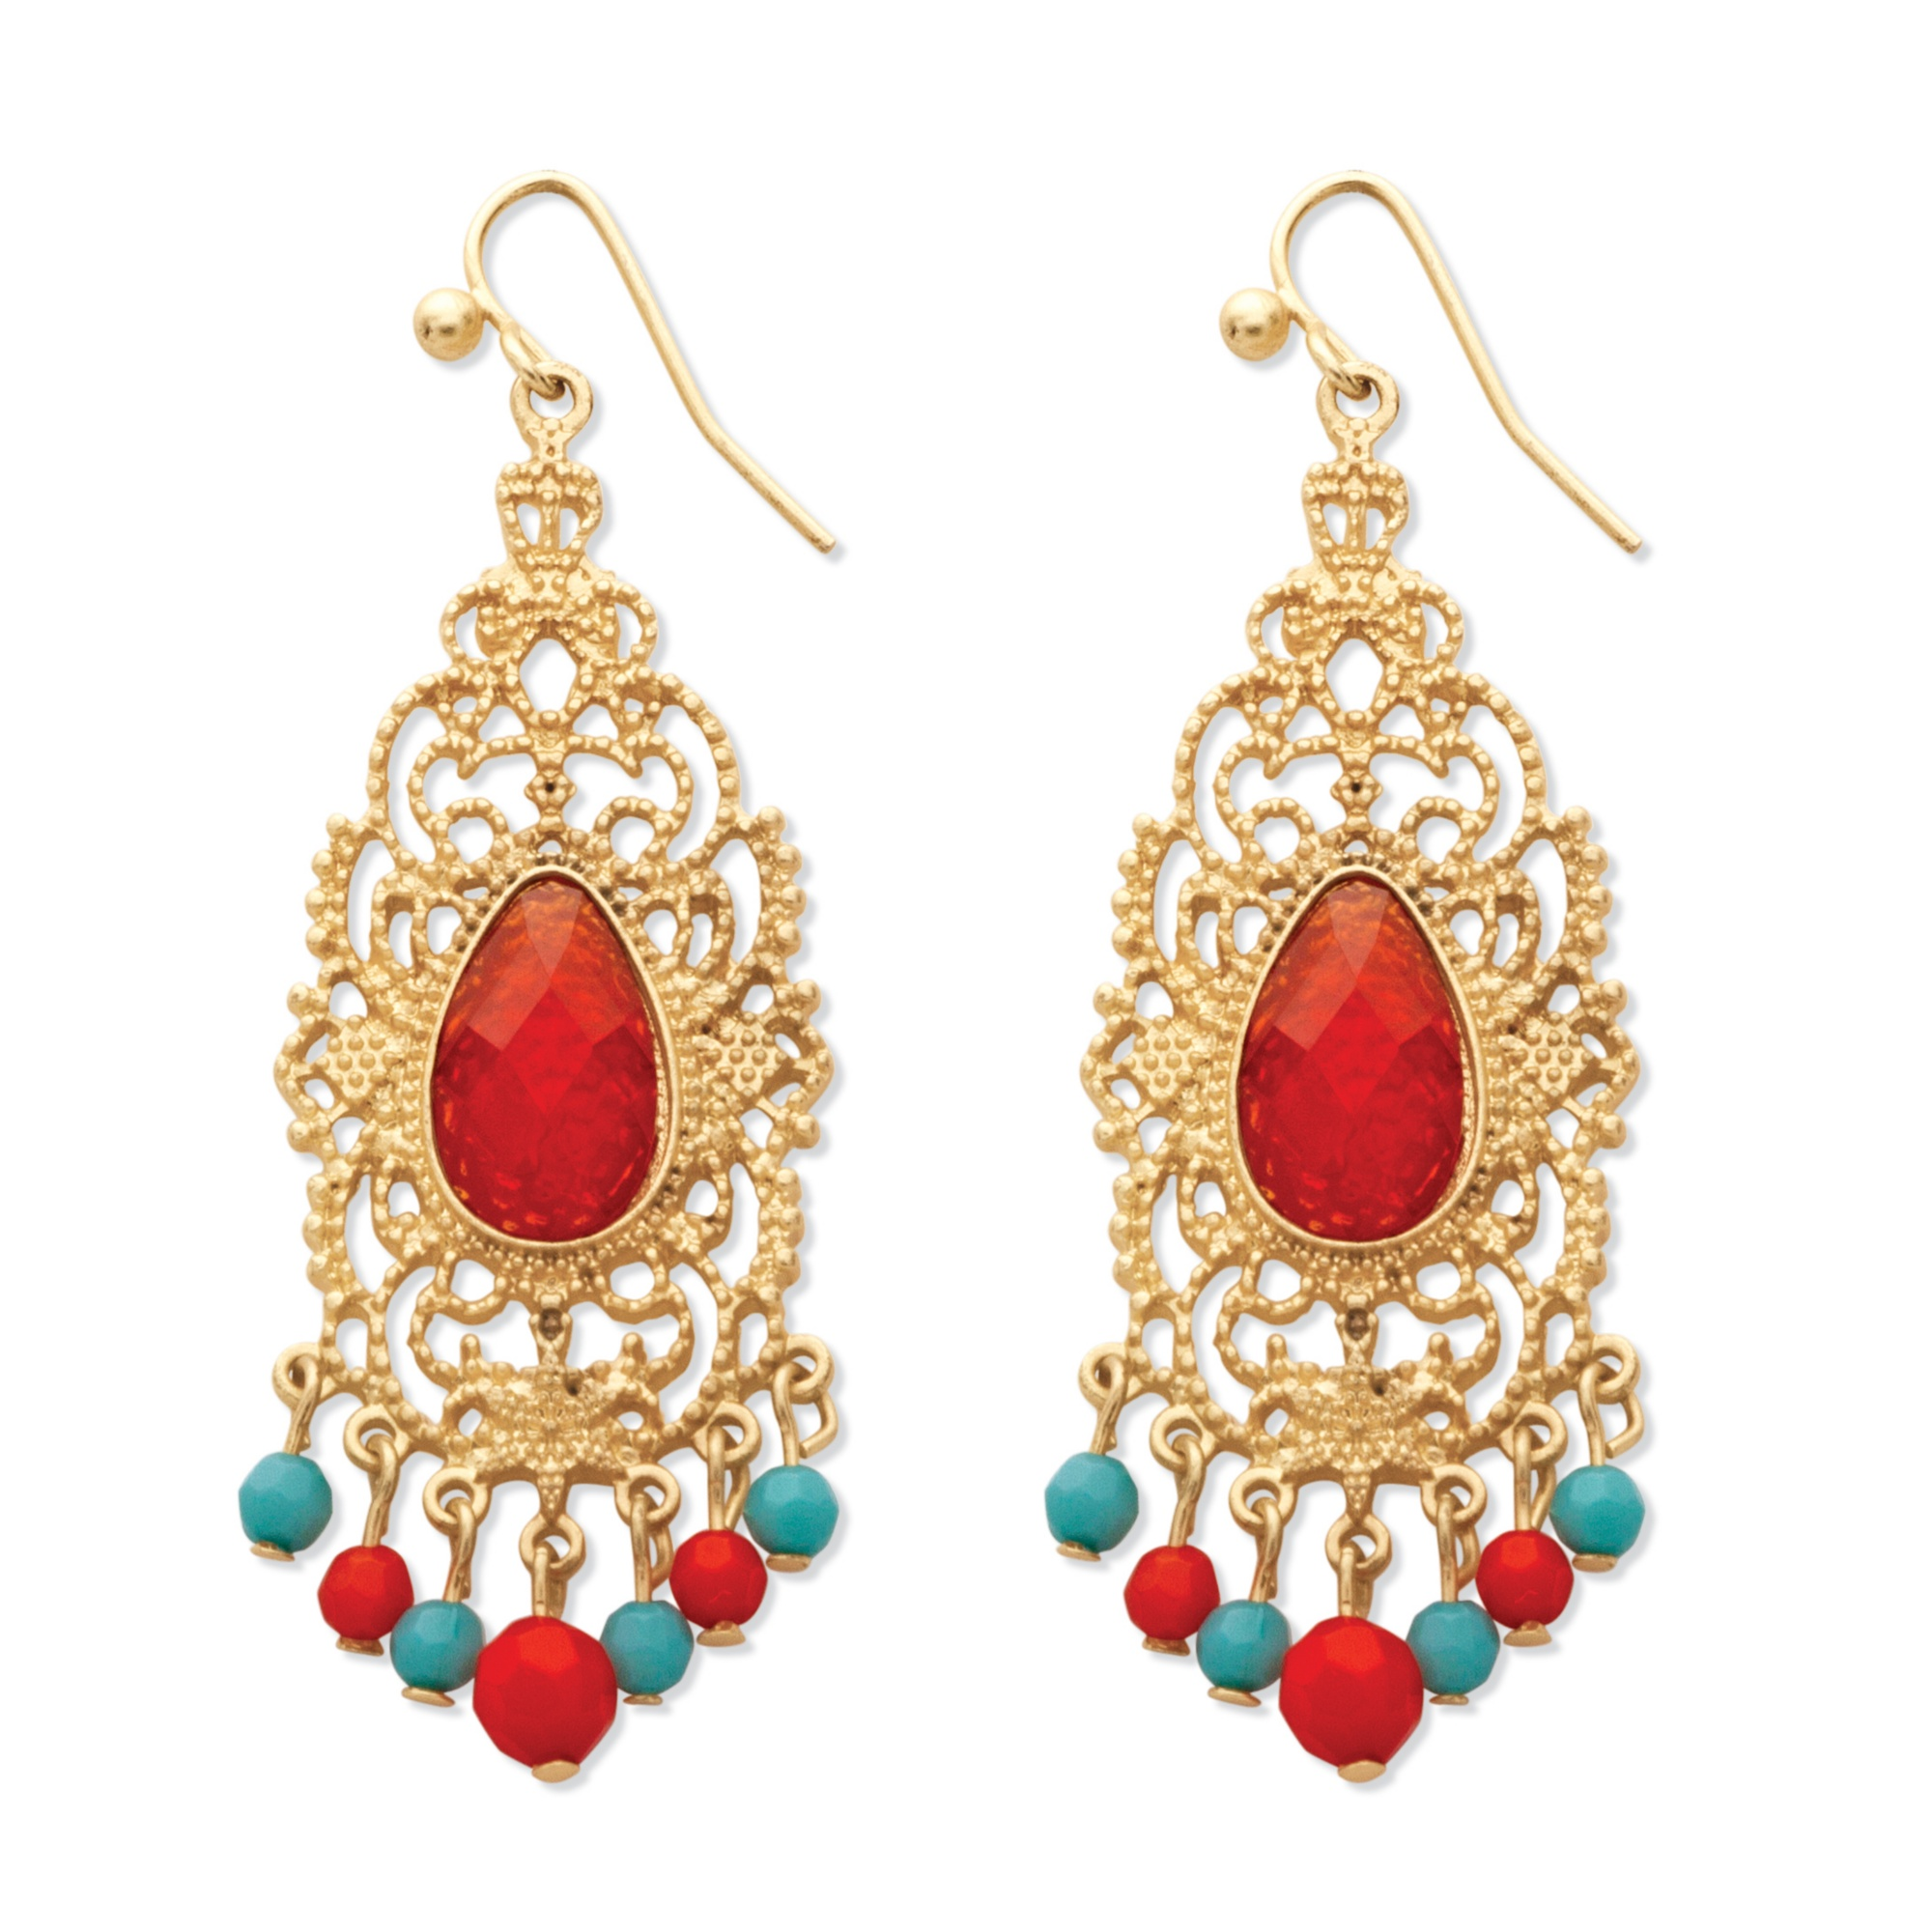 Red Crystal Scrollwork Chandelier Earrings in Yellow Gold Tone